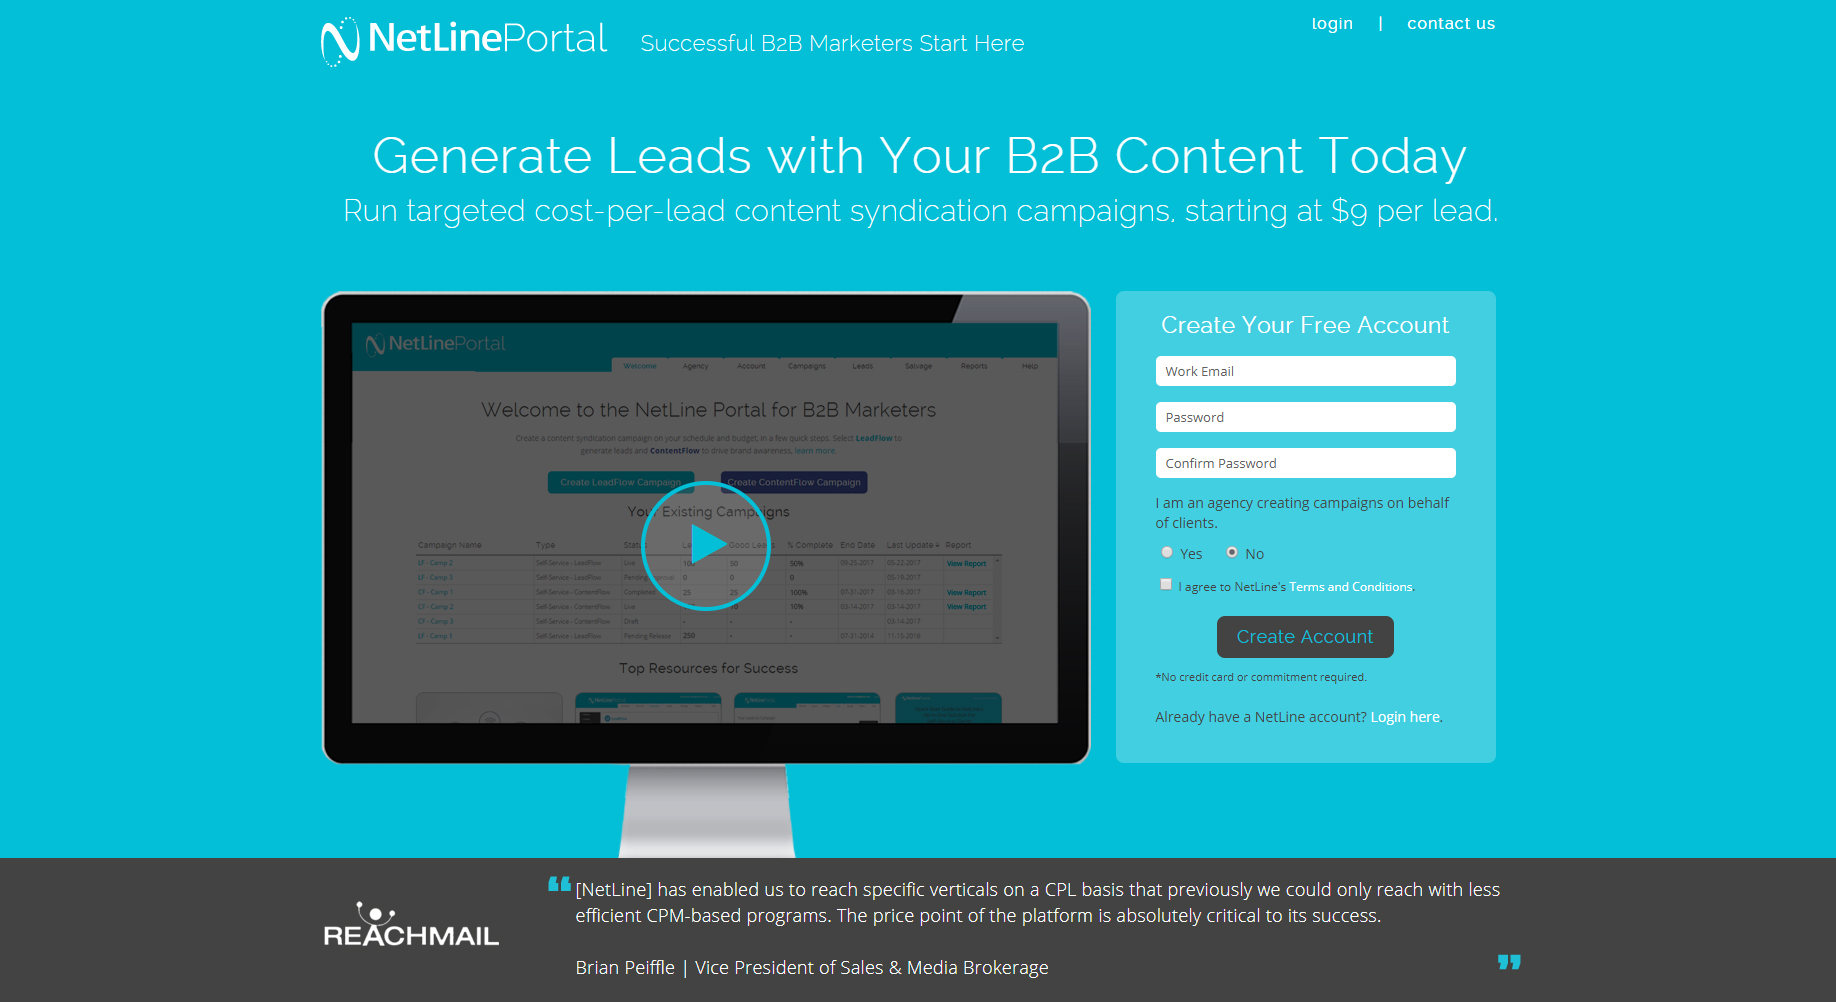 NetLine Corporation Demo - Generate Leads with Your B2B Content using NetLine Portal